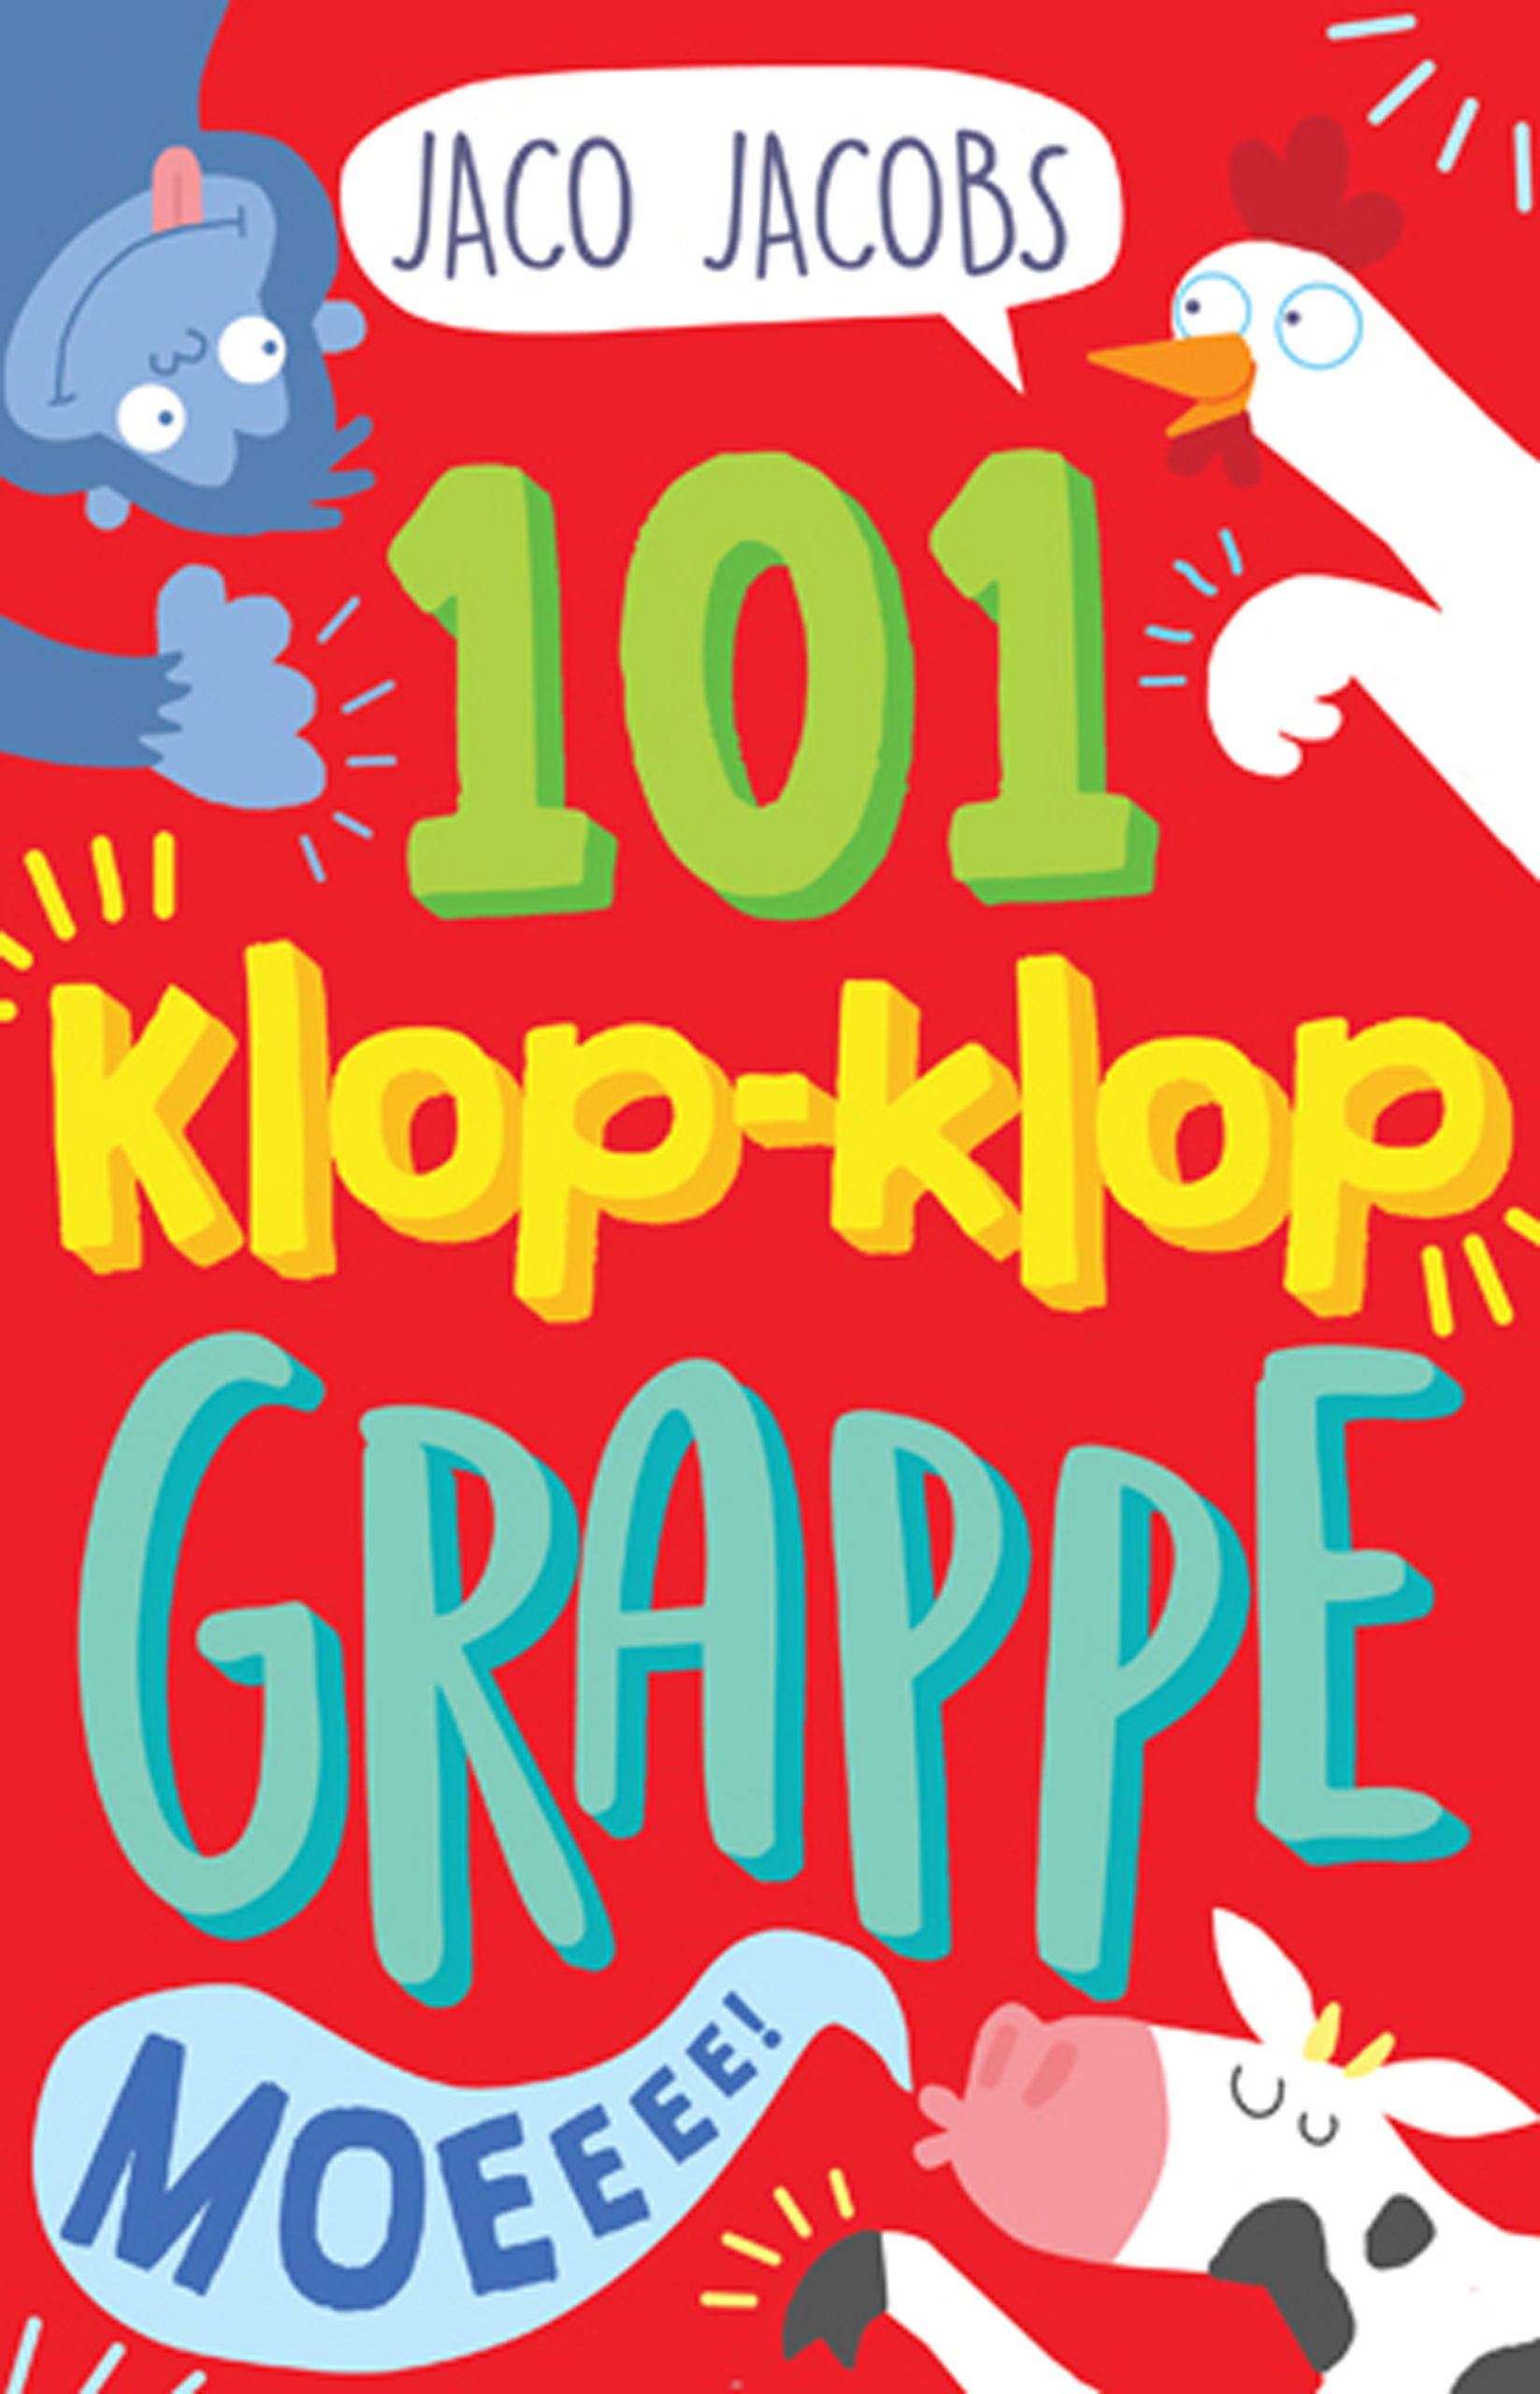 Picture of 101 klop-klop grappe